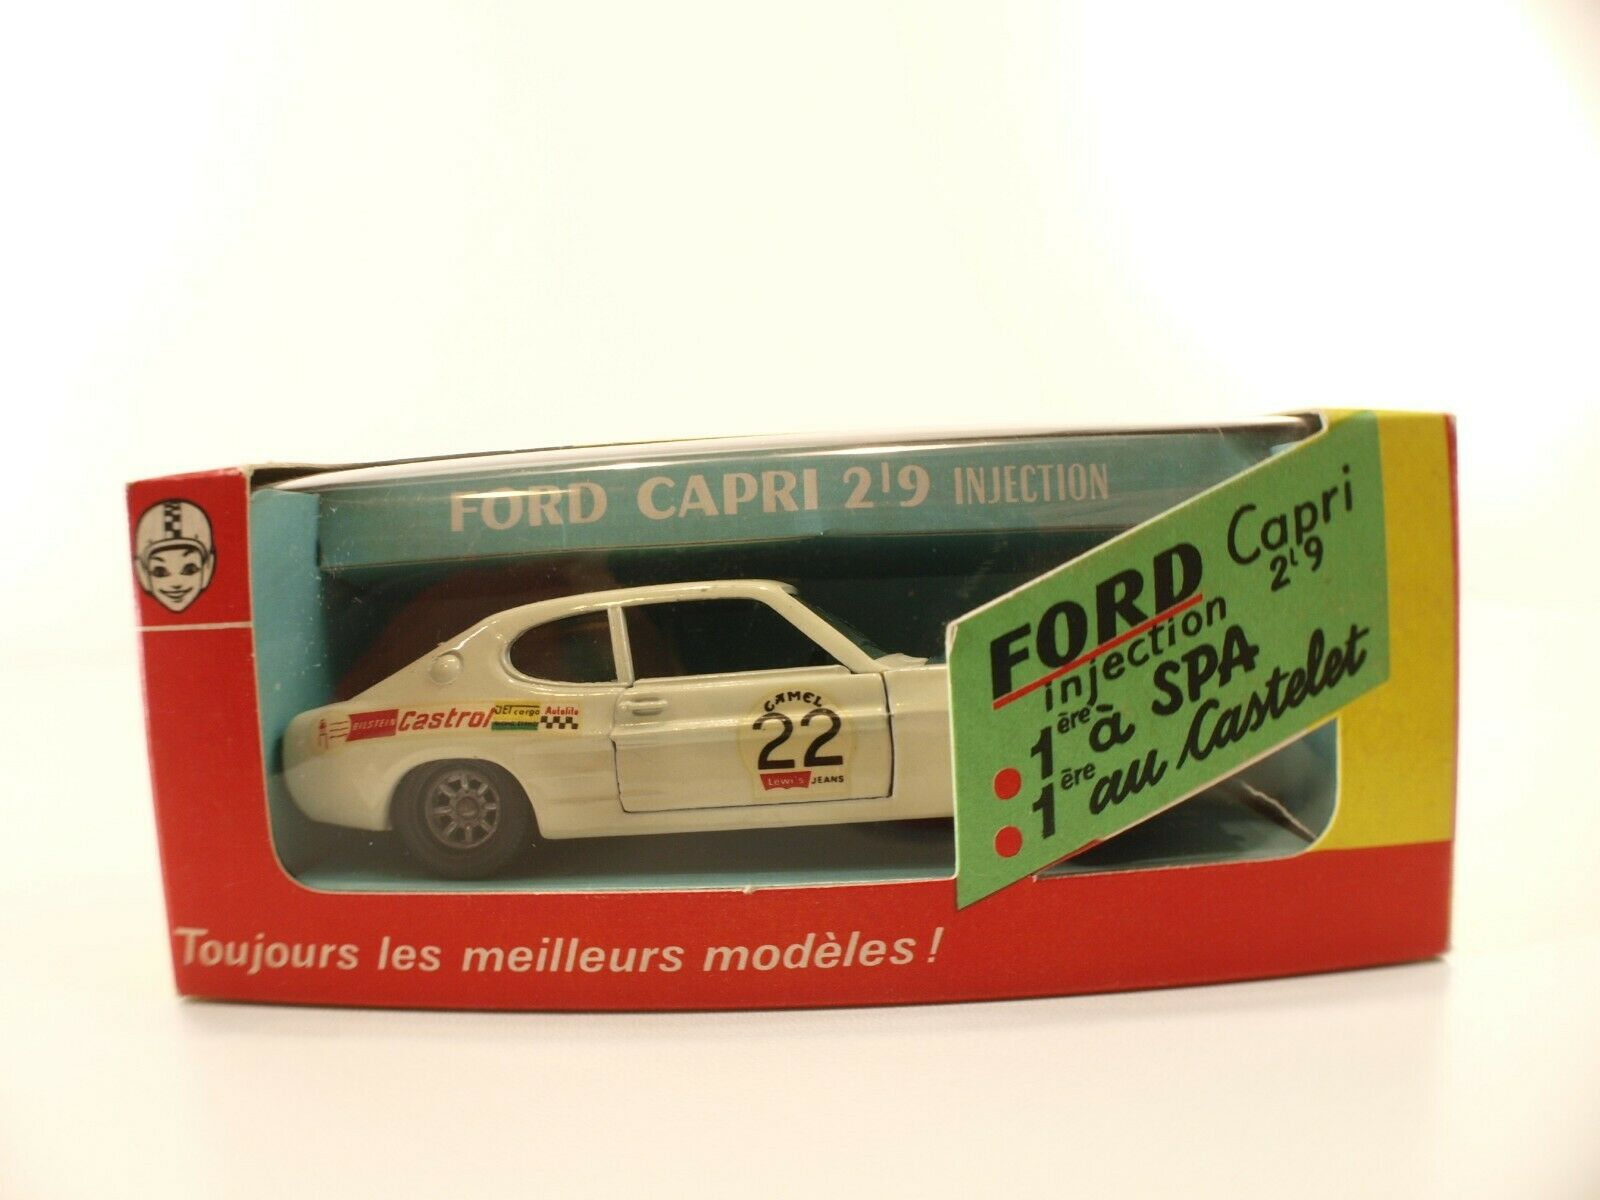 Solido - N FRAMTIDE 65533;, 65533; 190 Ford Capri 2L9 Inspection Castlet 1 43 - New in Box